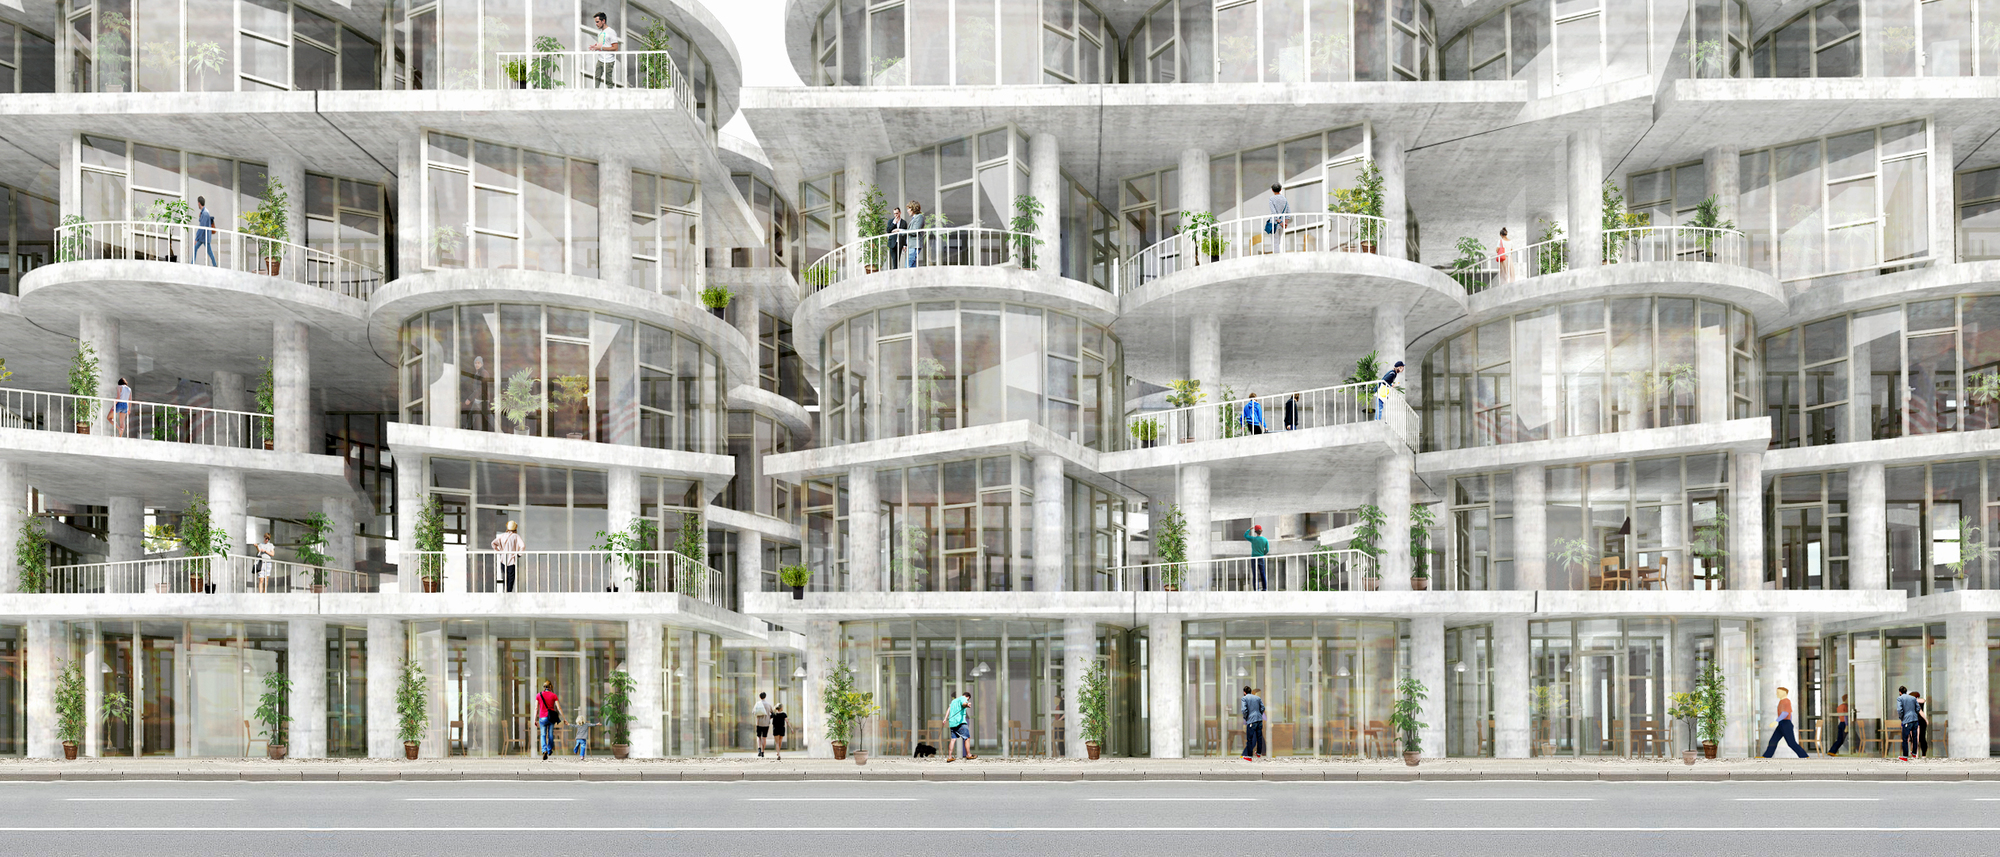 Bee breeders reveal new york affordable housing challenge for Apartment design competition